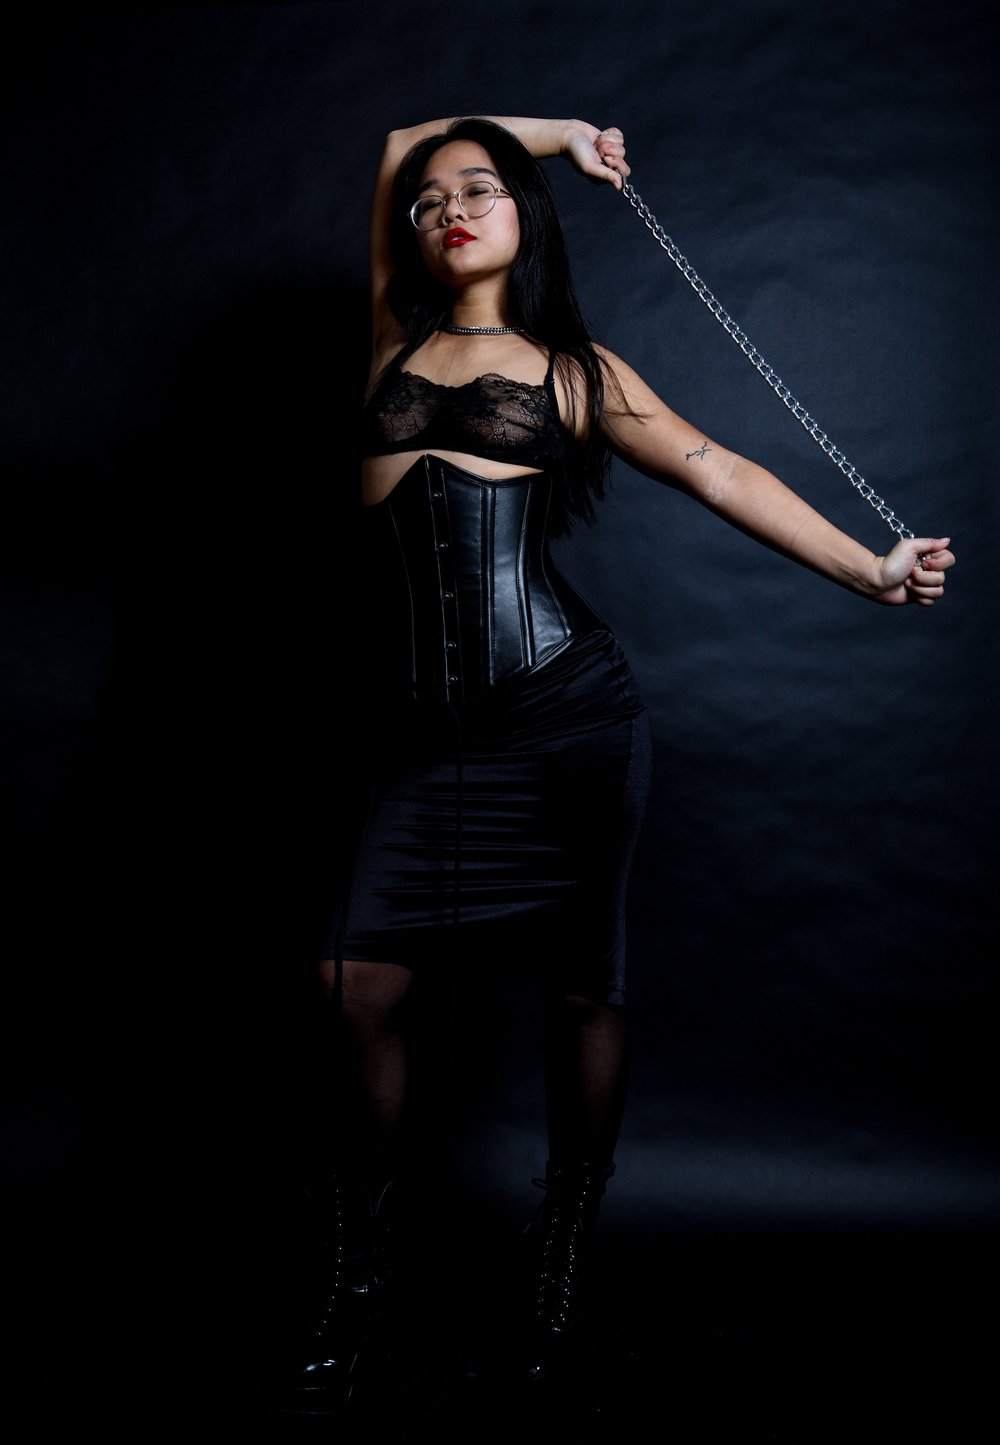 Chinese Dominatrix Empress Wu In an all black outfit: lingerie, leather corset, nylons, and vinyl boots, New York Prodomme is ready to take all of your fetishes